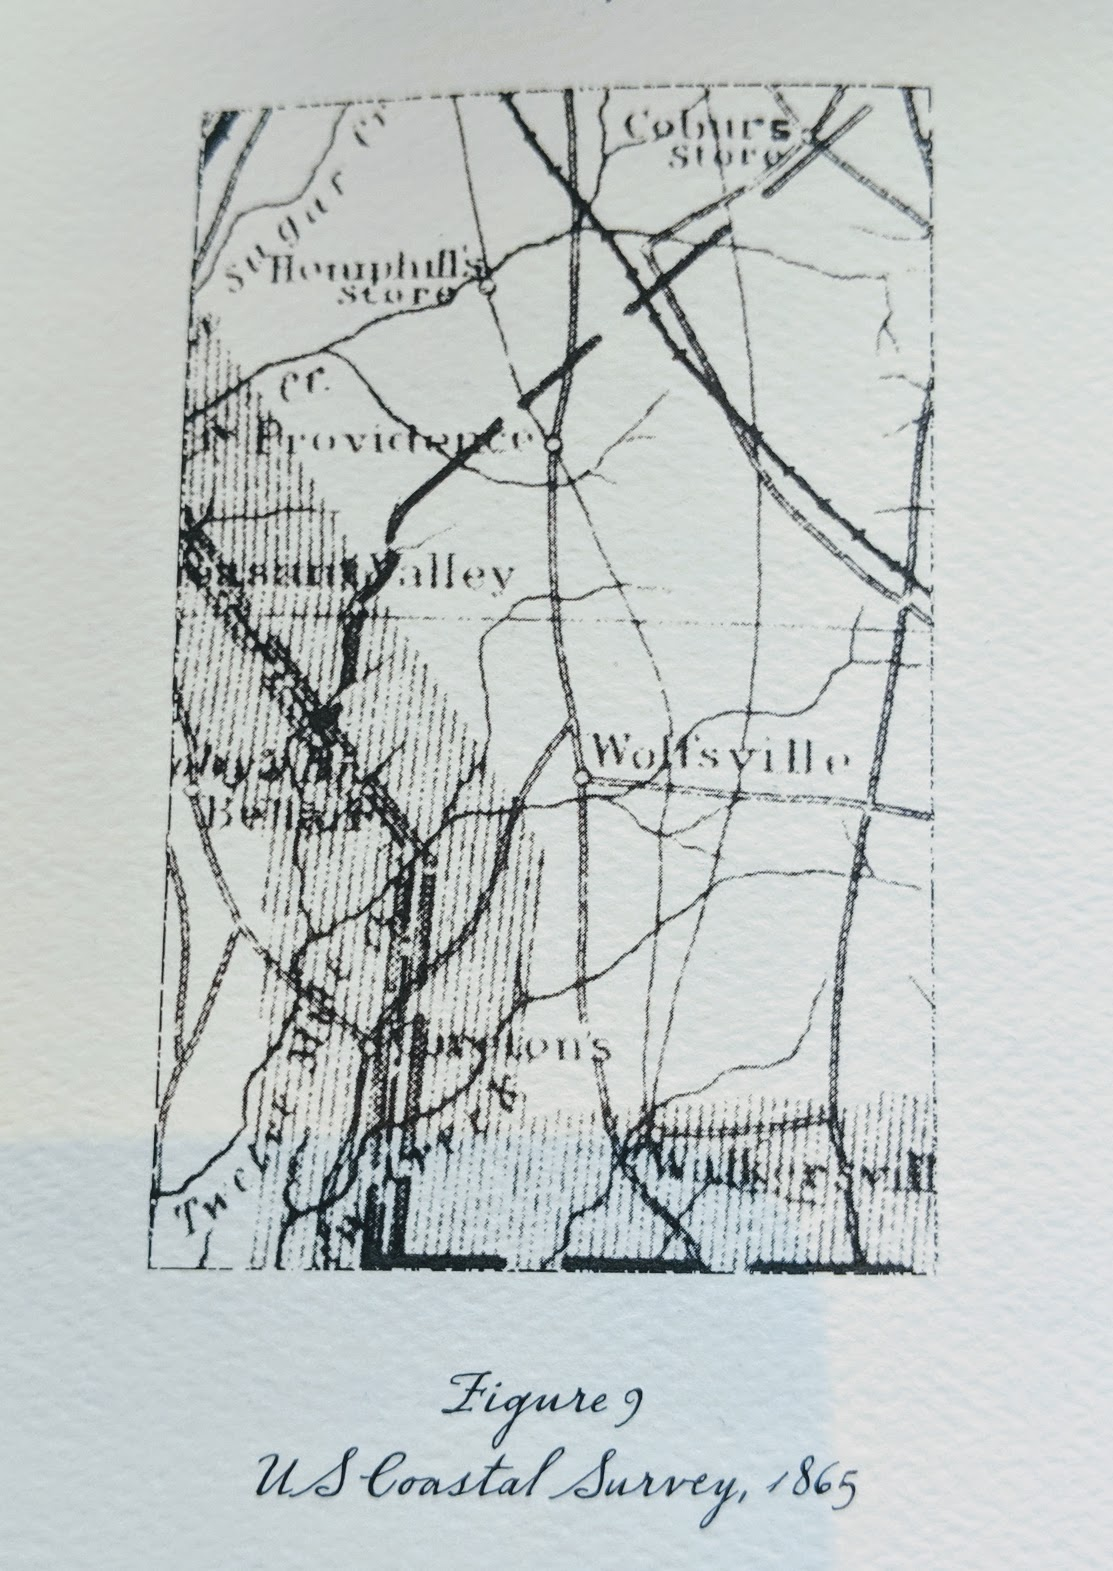 but not through… - Providence while the US Coastal Survey map (Figure 9, Right), drawn at the end of the conflict, shows a transition to the modern road lines. Providence Road passes over